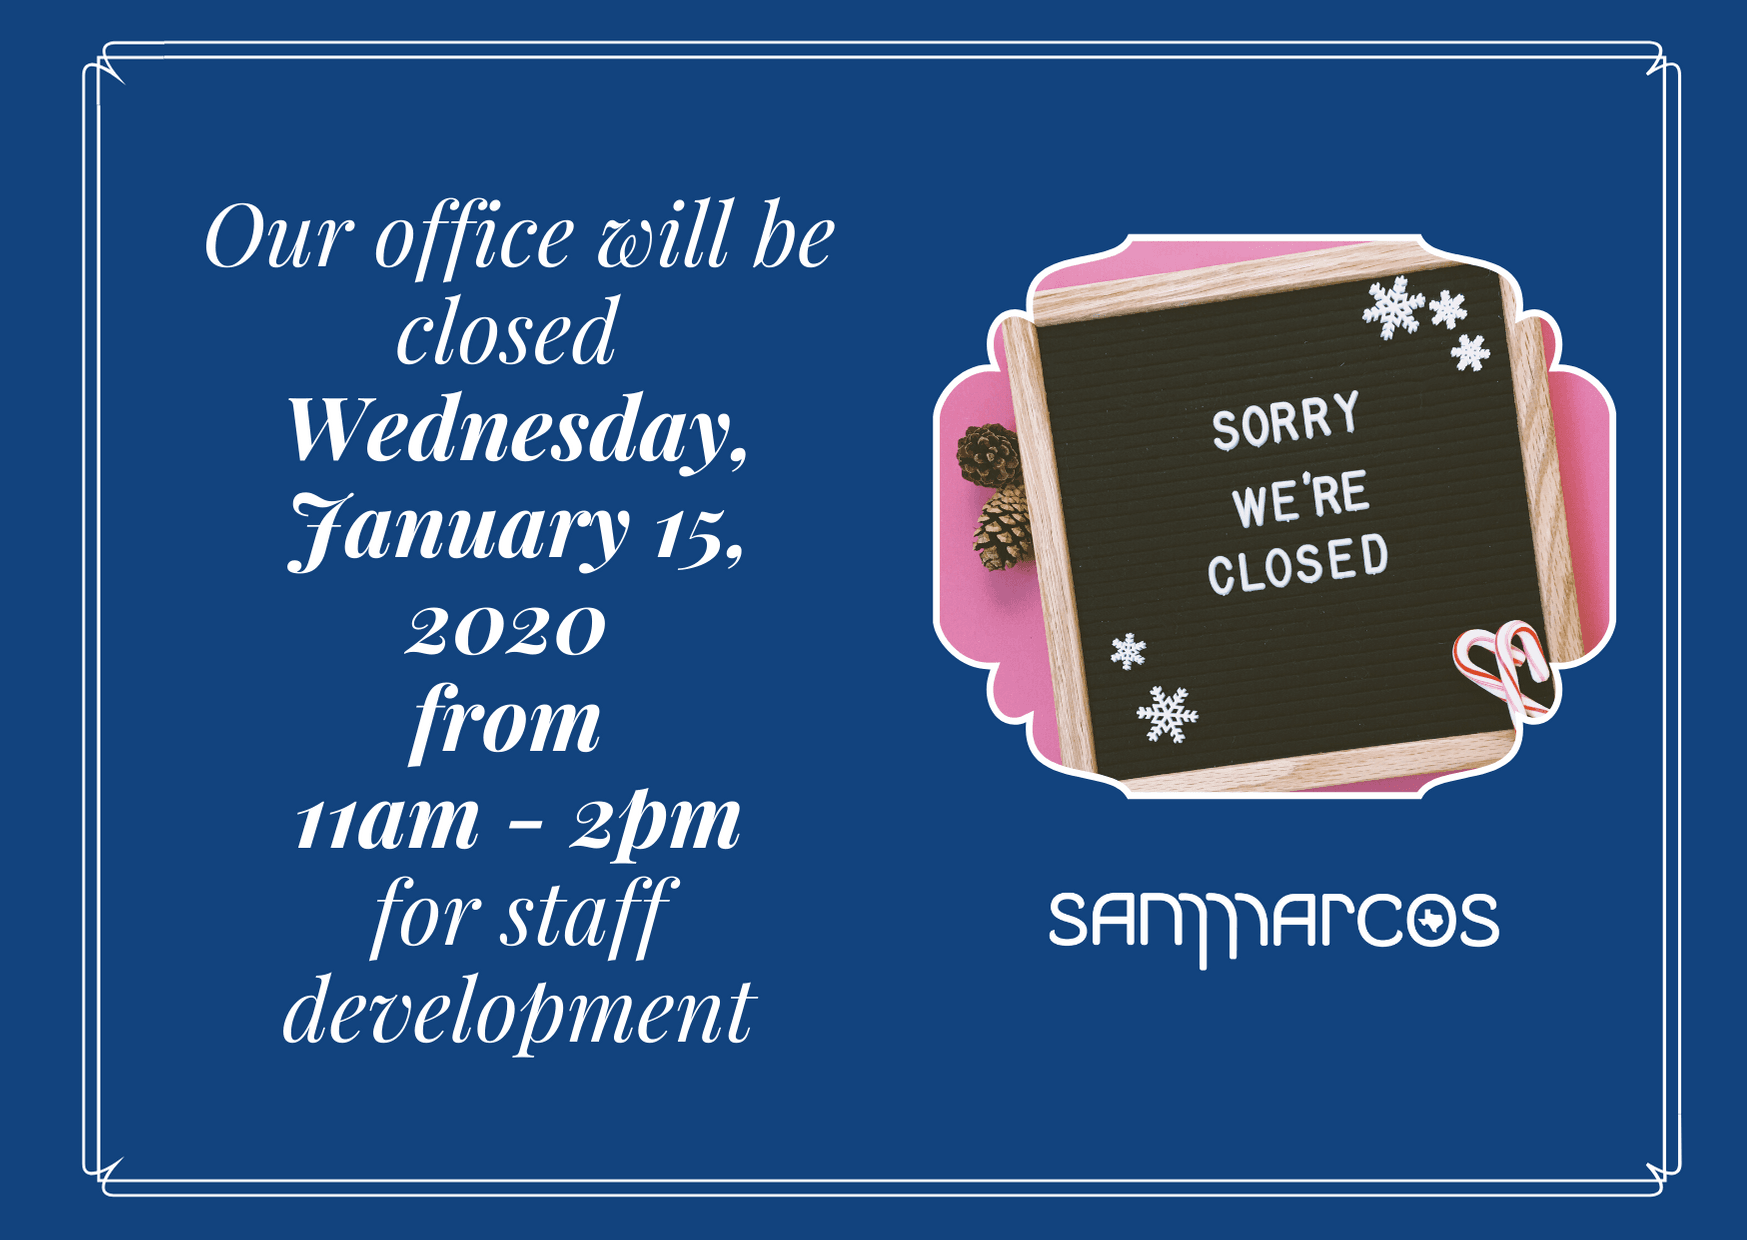 Neighborhood Enhancement Office Closed Wednesday, January 15th from 11am-2pm for staff development.